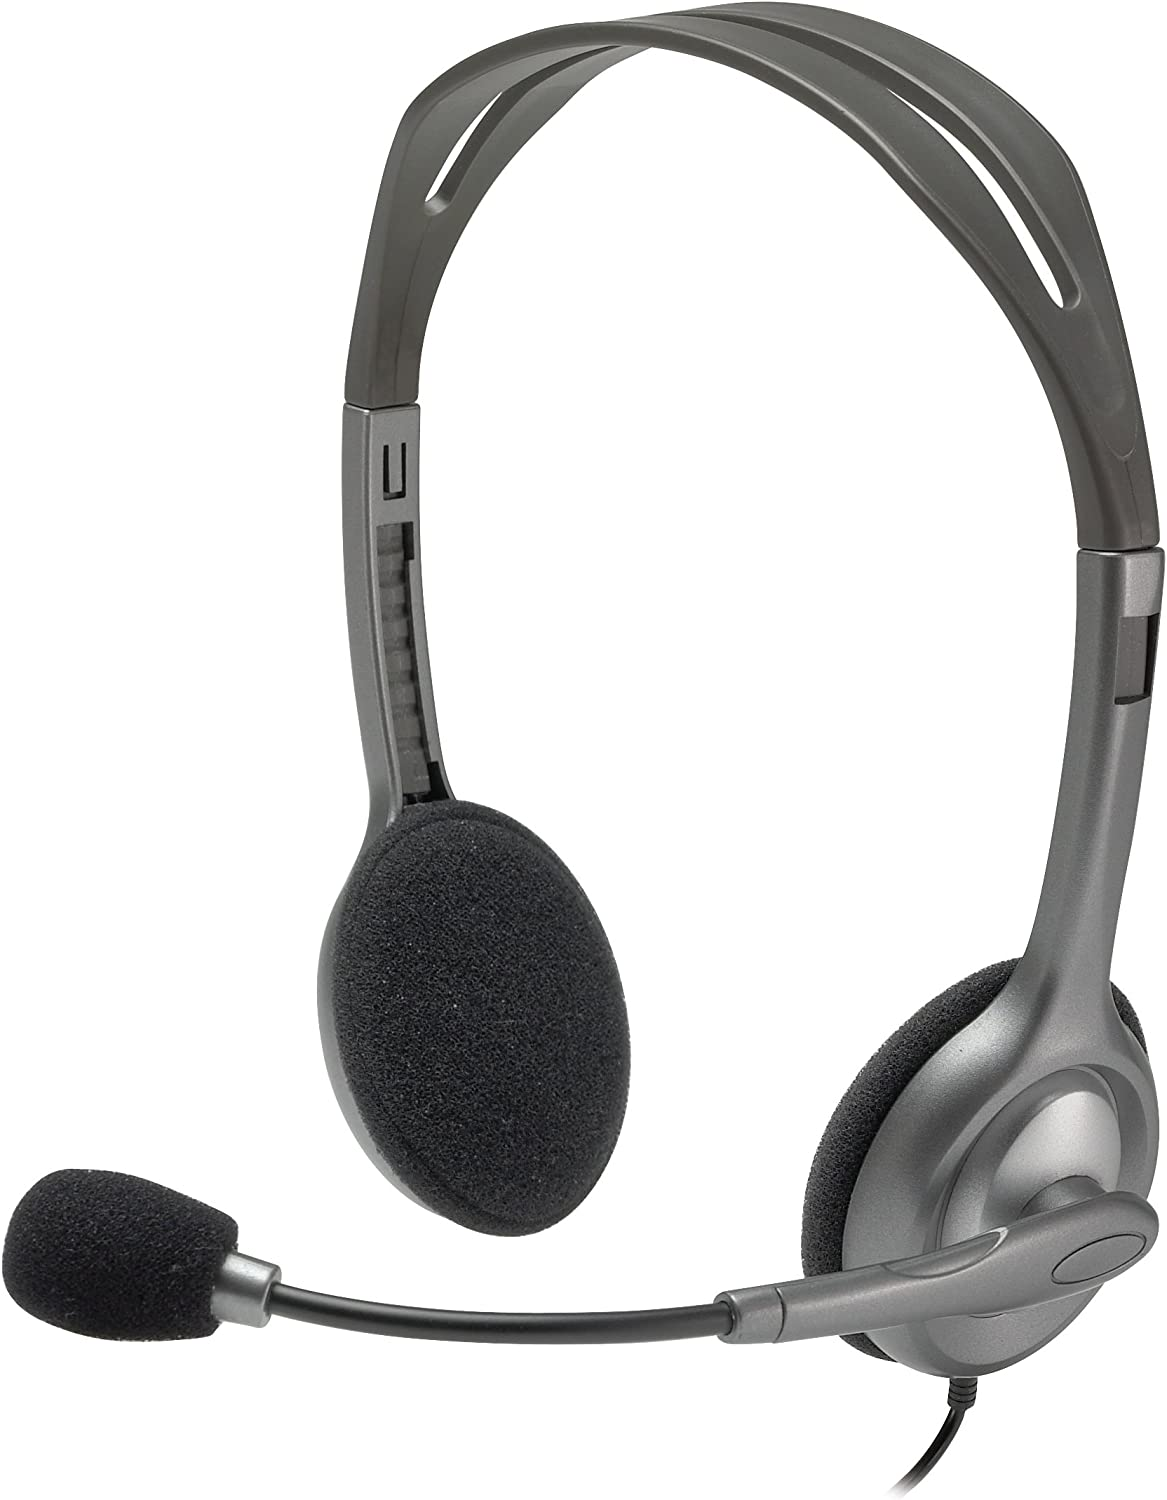 Amazon.com: Logitech Stereo Headset H111: Computers & Accessories